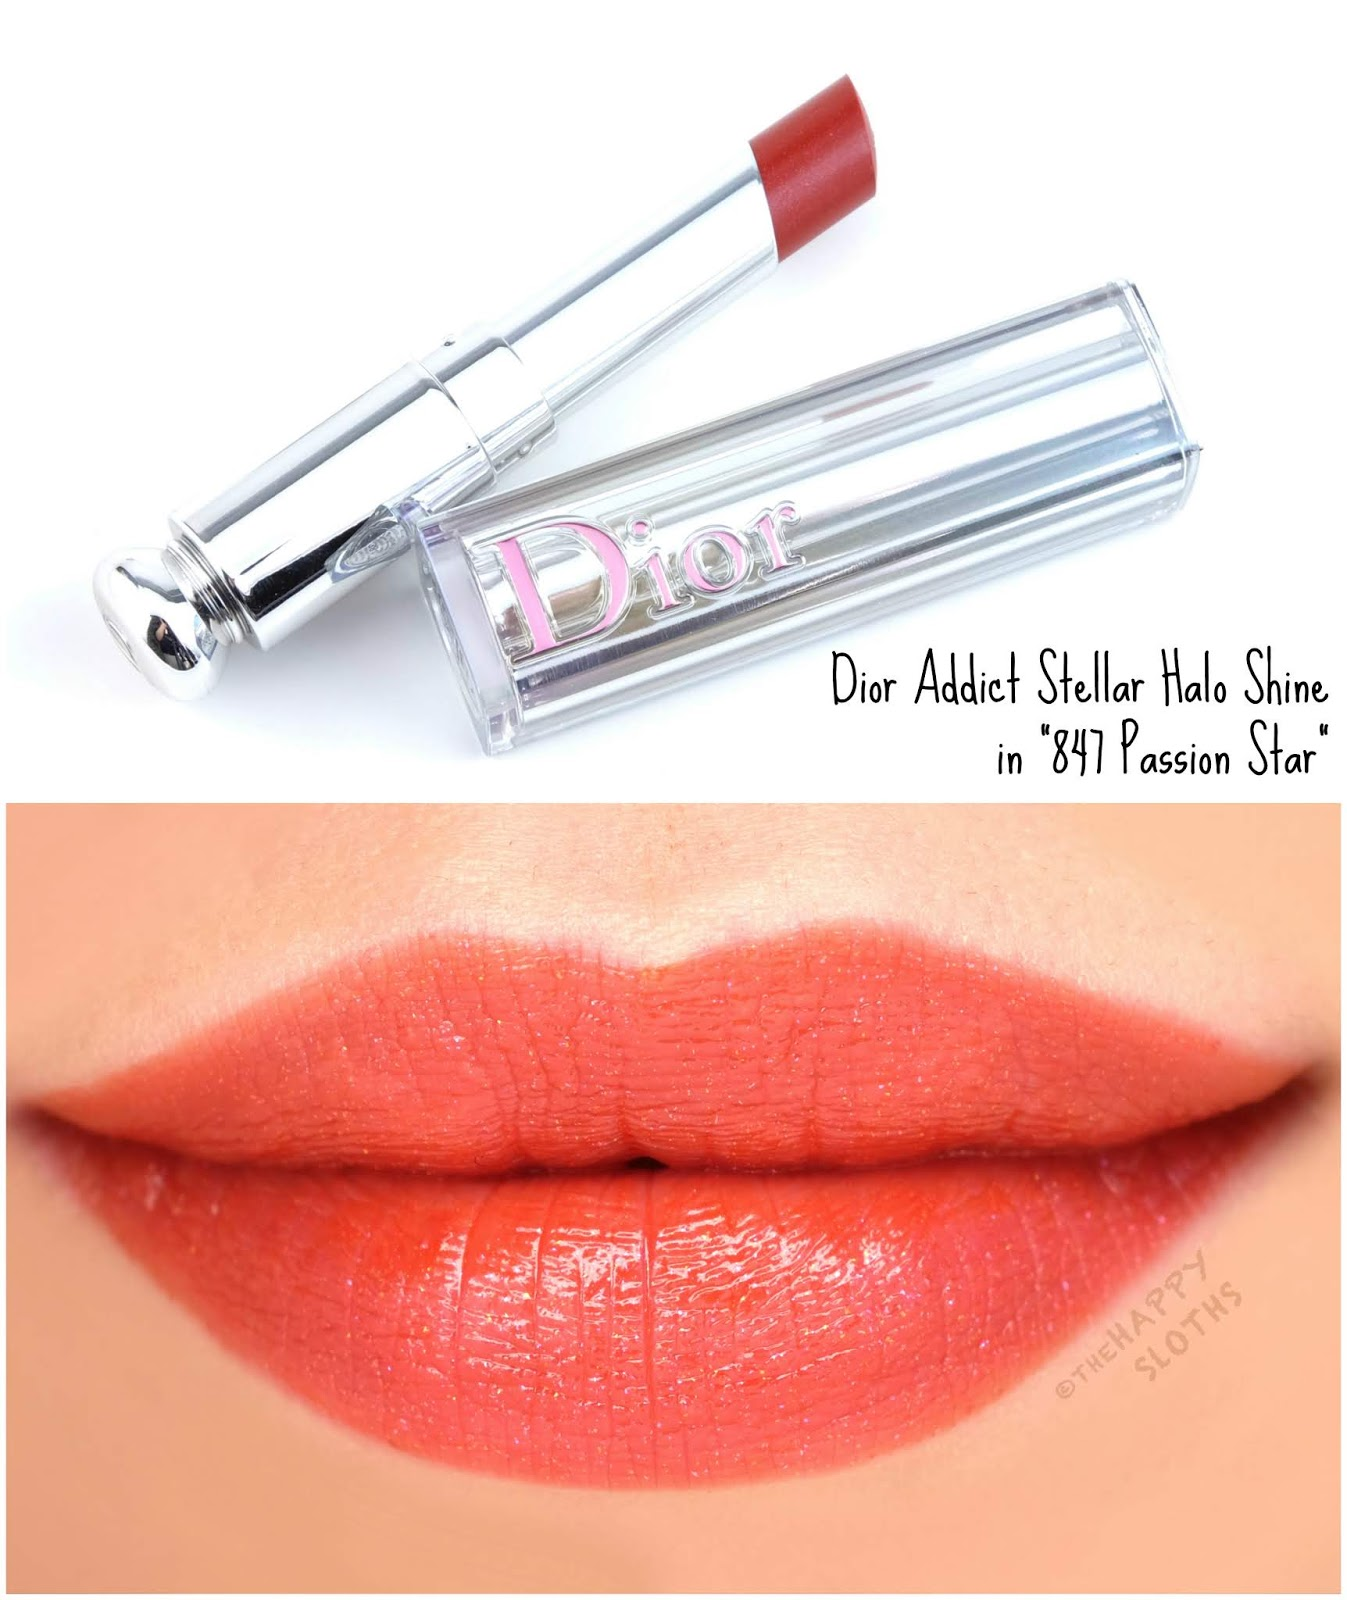 "Dior | Dior Addict Stellar Halo Shine Lipstick in ""847 Passion Star"": Review and Swatches"